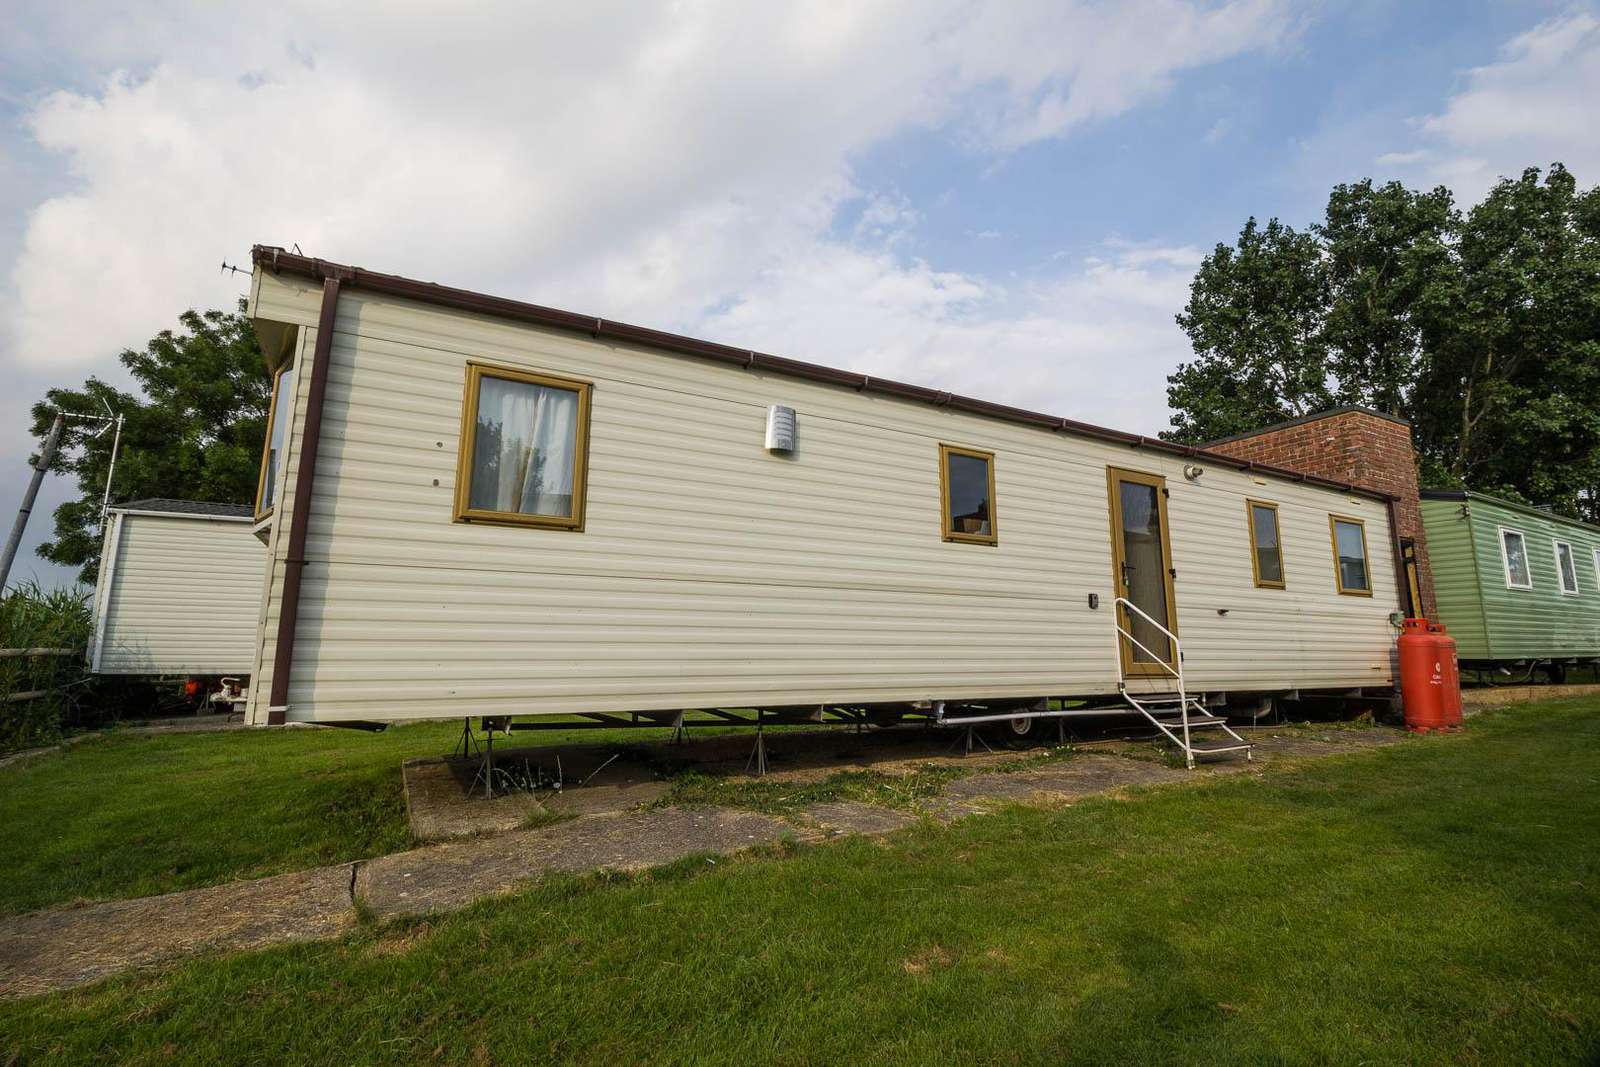 27158S – Seawick, 3 bed, 8 berth caravan with free WiFi, field views, D/G & C/H. Ruby rated. - property